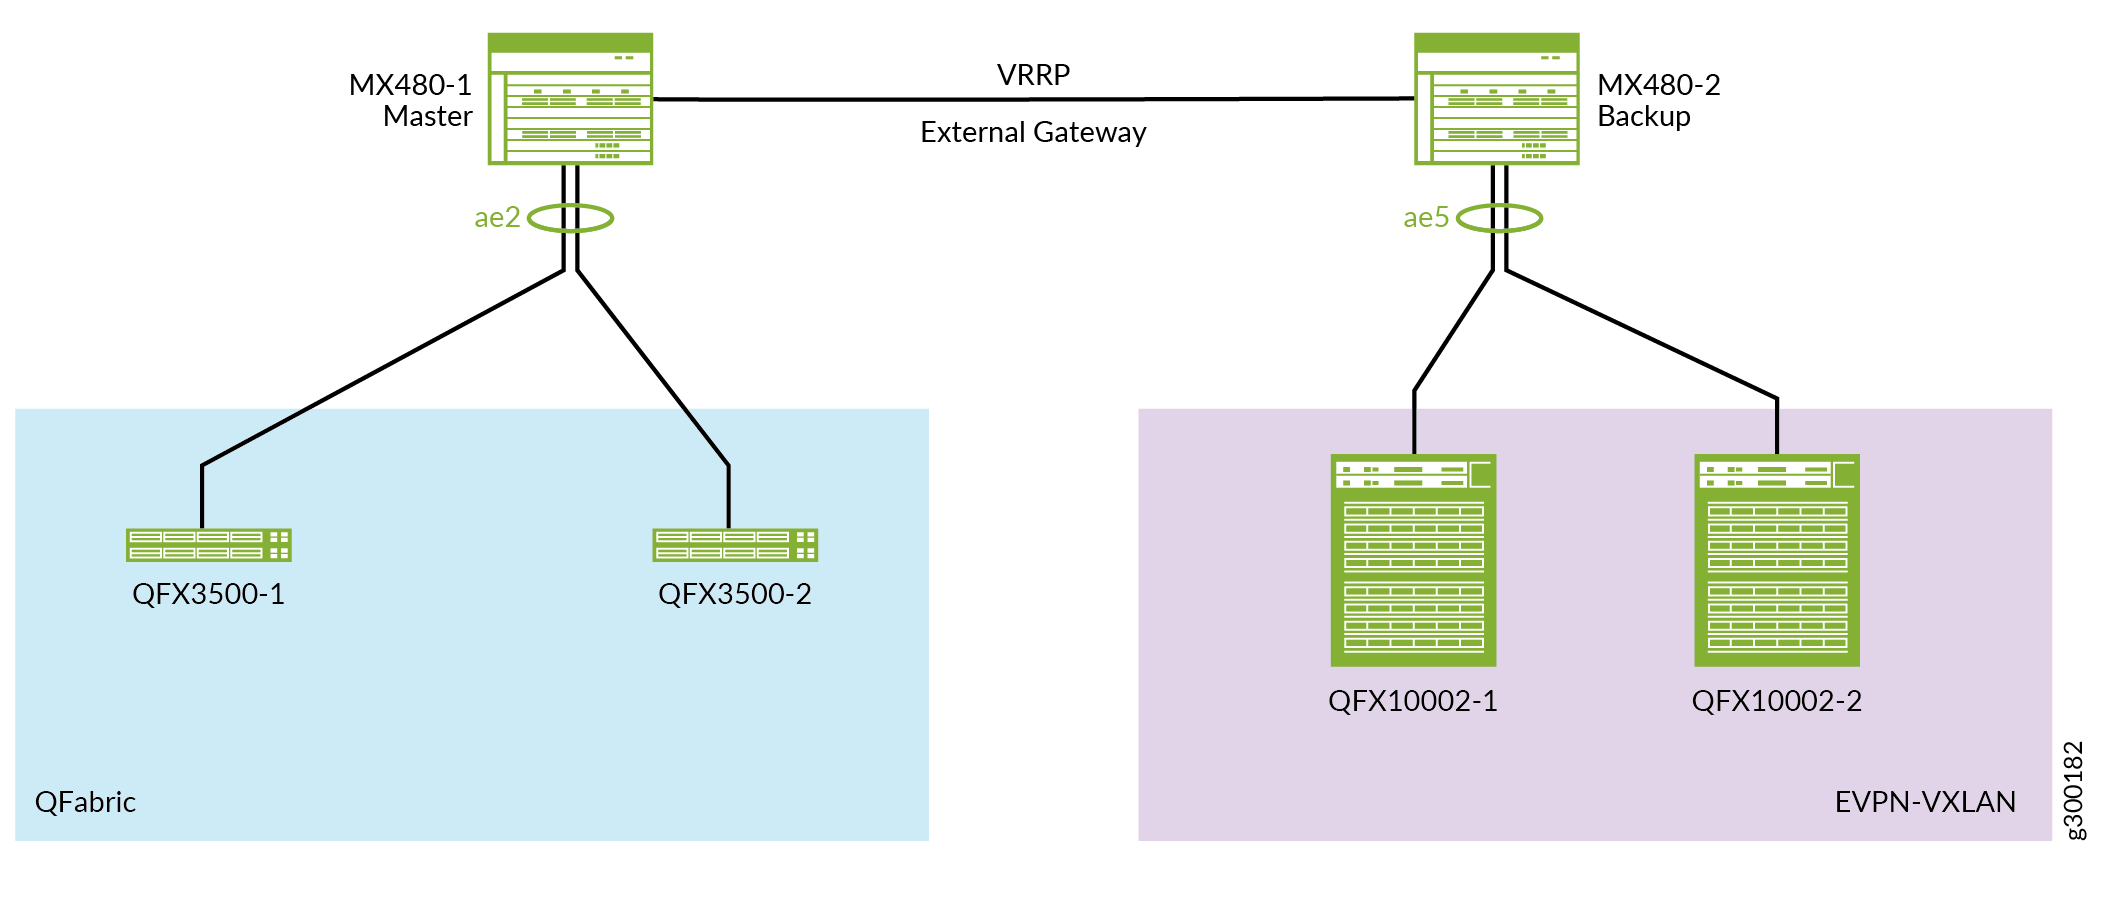 Example: Migrating a QFabric System to an EVPN-VXLAN IP Fabric